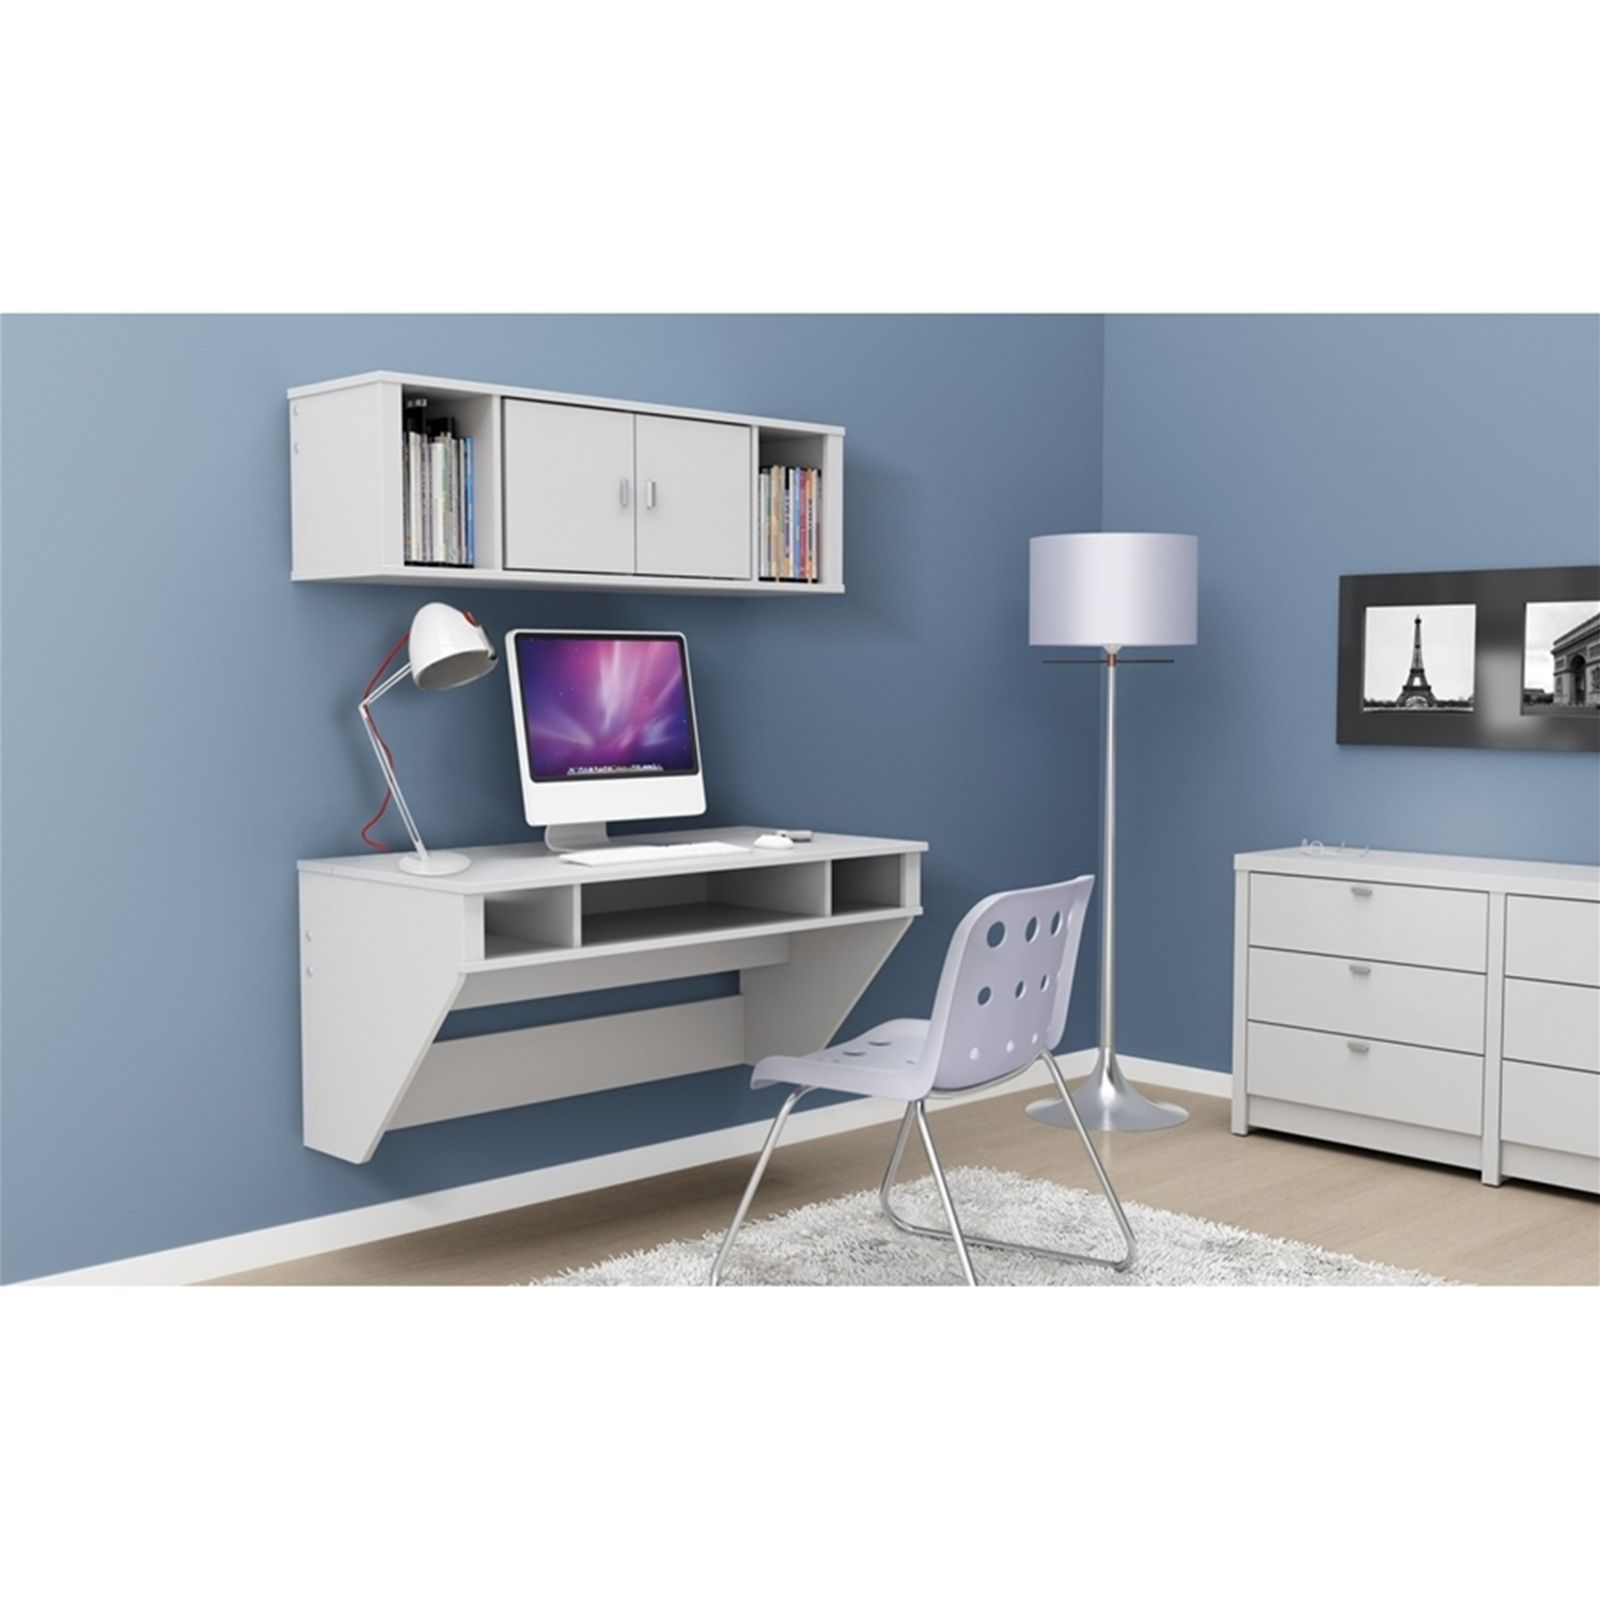 fenel et arno lampe 2 cv lampe de bureau design. Black Bedroom Furniture Sets. Home Design Ideas